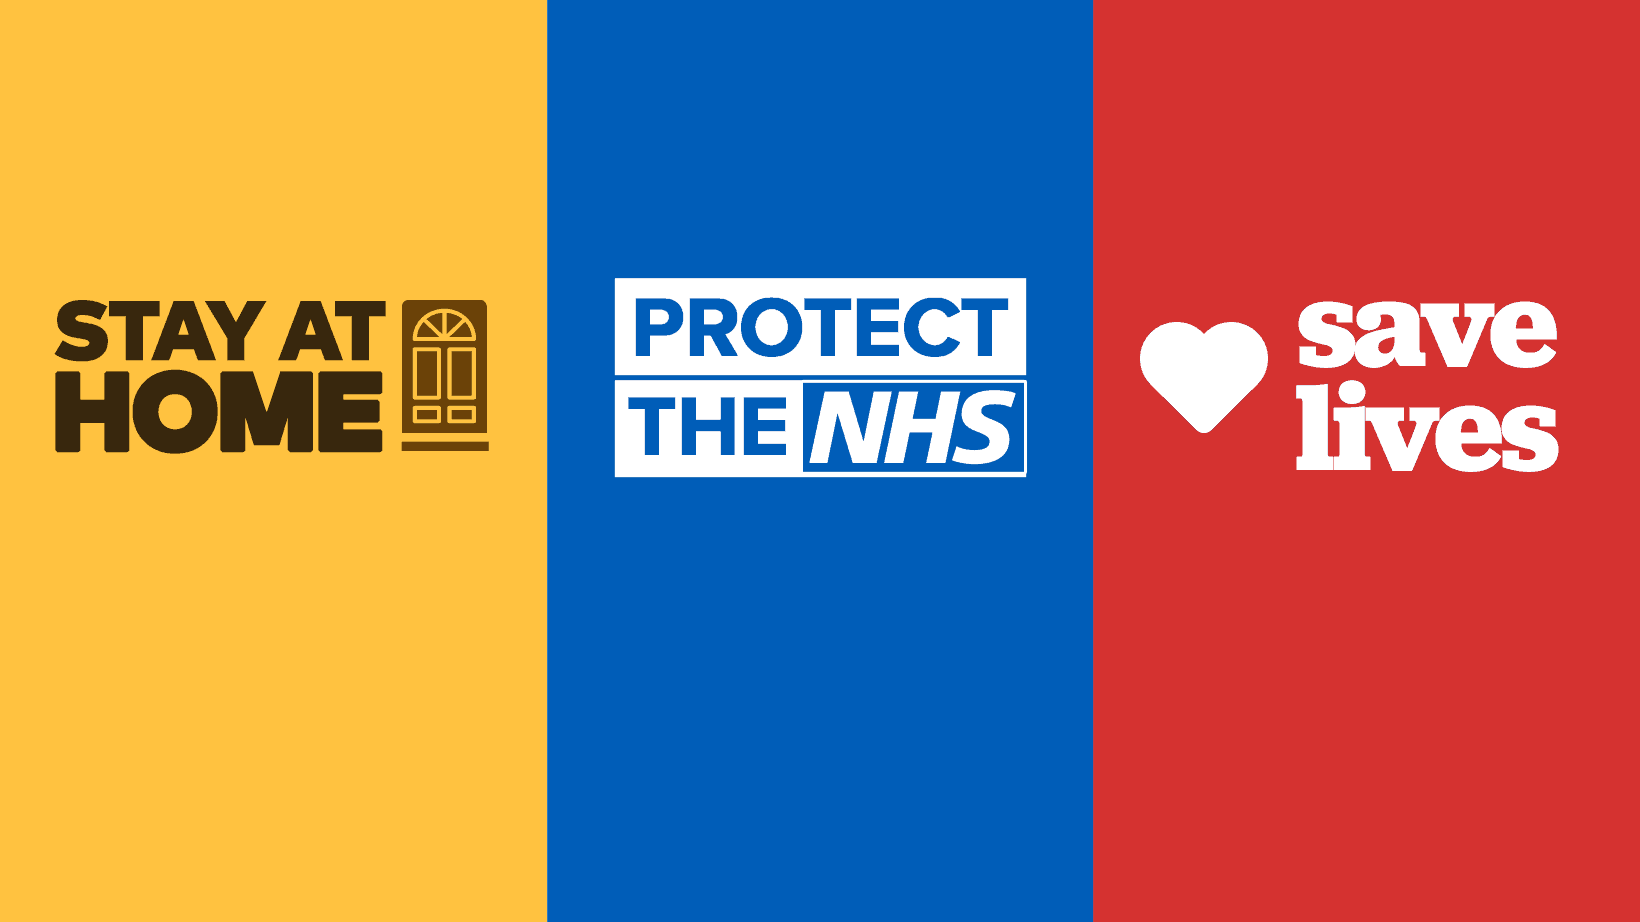 Stay at home and protect the NHS